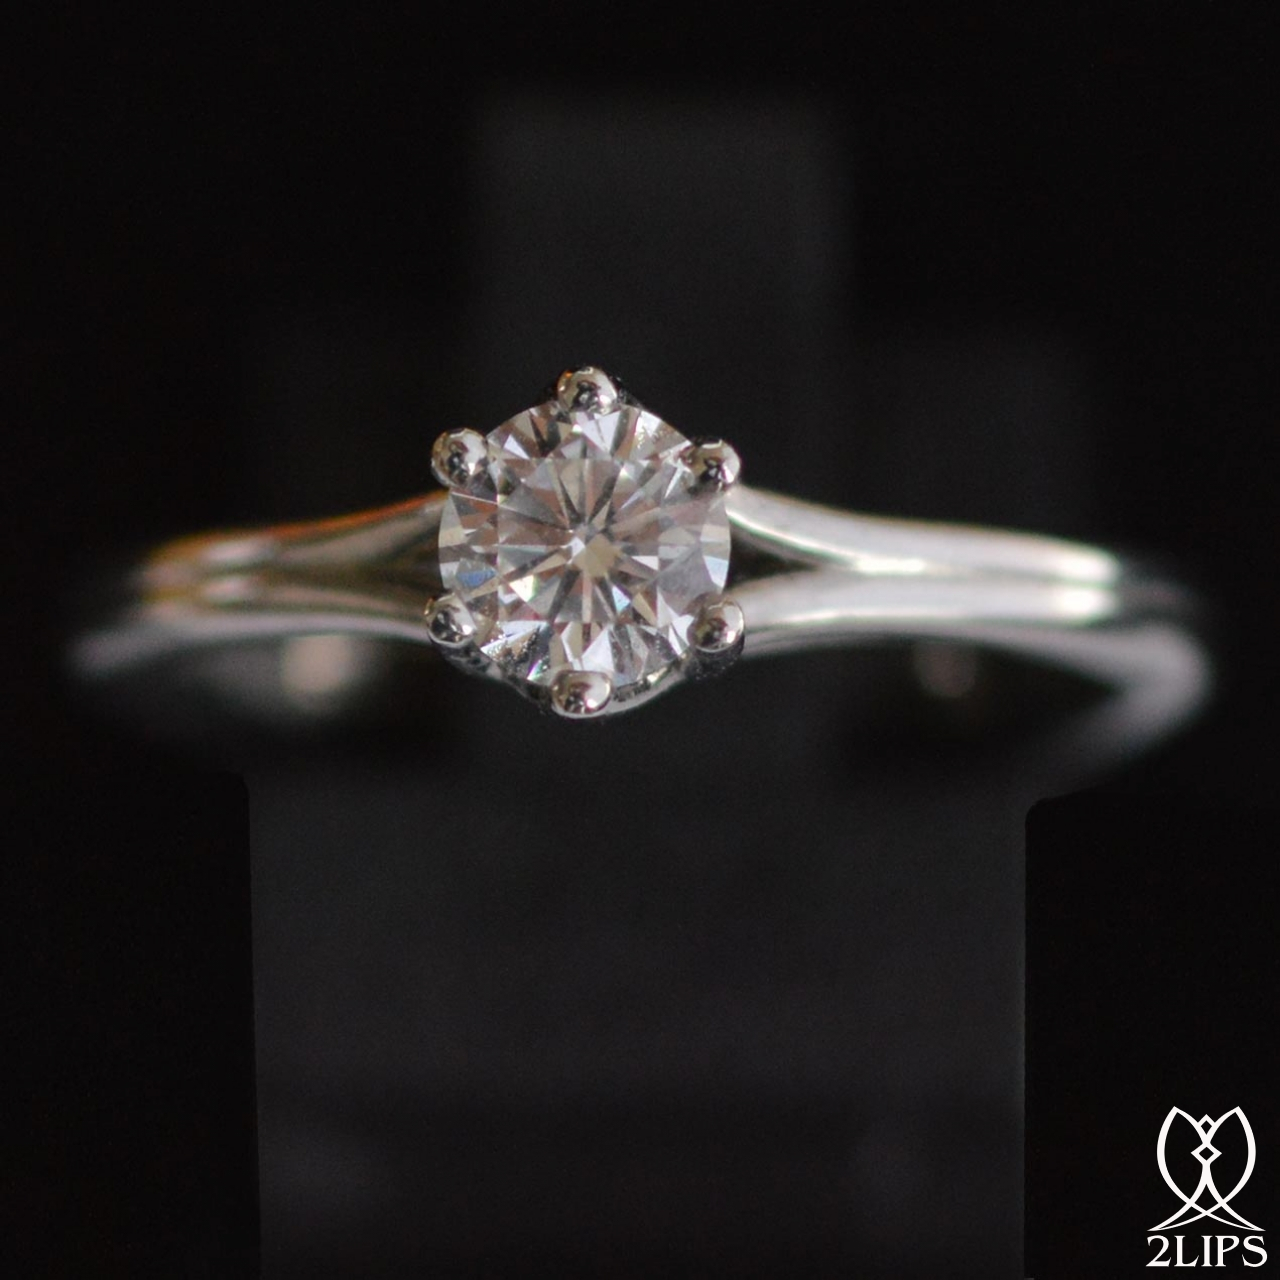 2lips-0-47-ct-river-h-solitair-diamond-engagement-ring